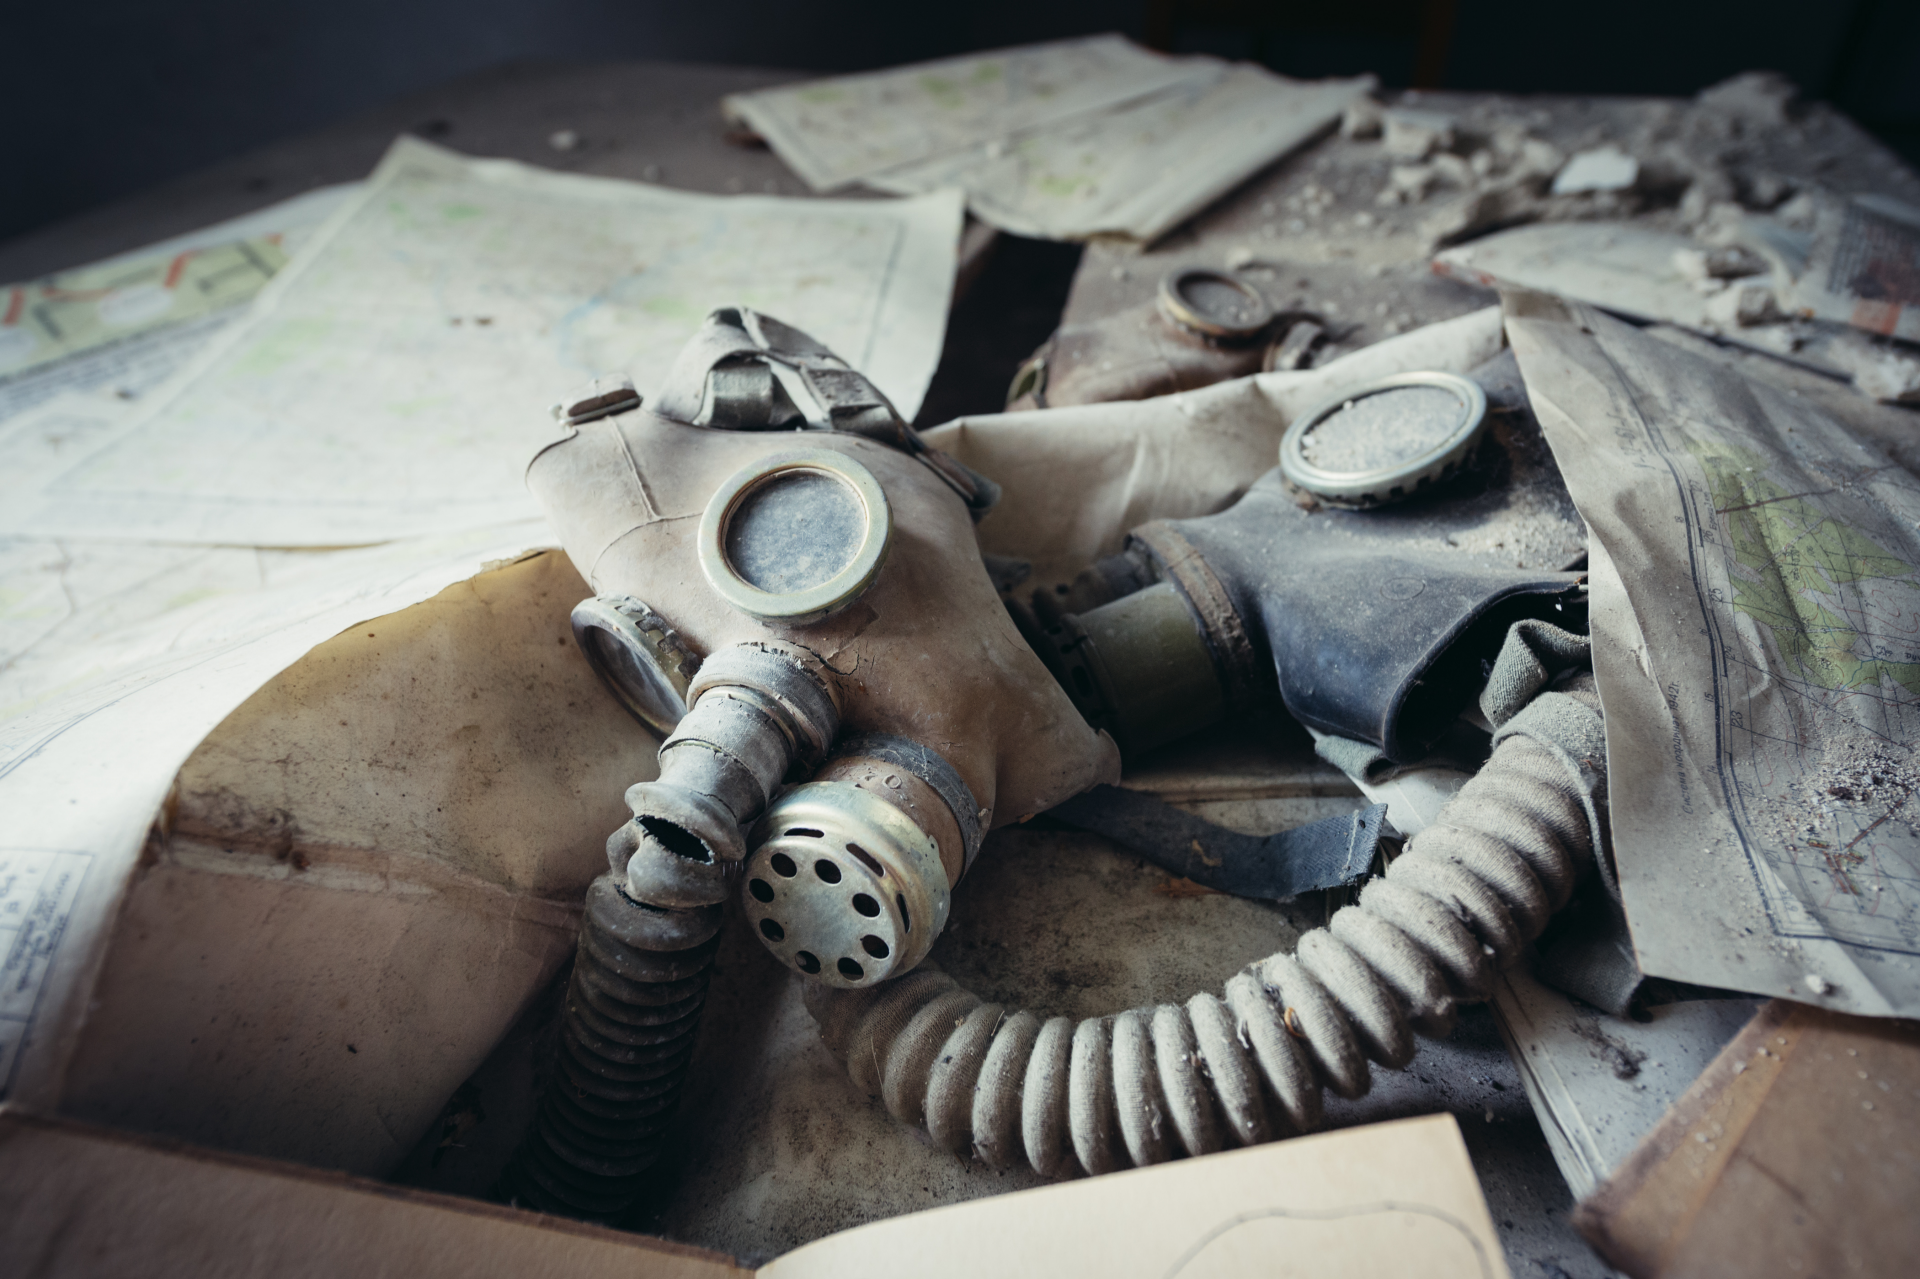 How did radiation affect the 'liquidators' of the Chernobyl nuclear meltdown?